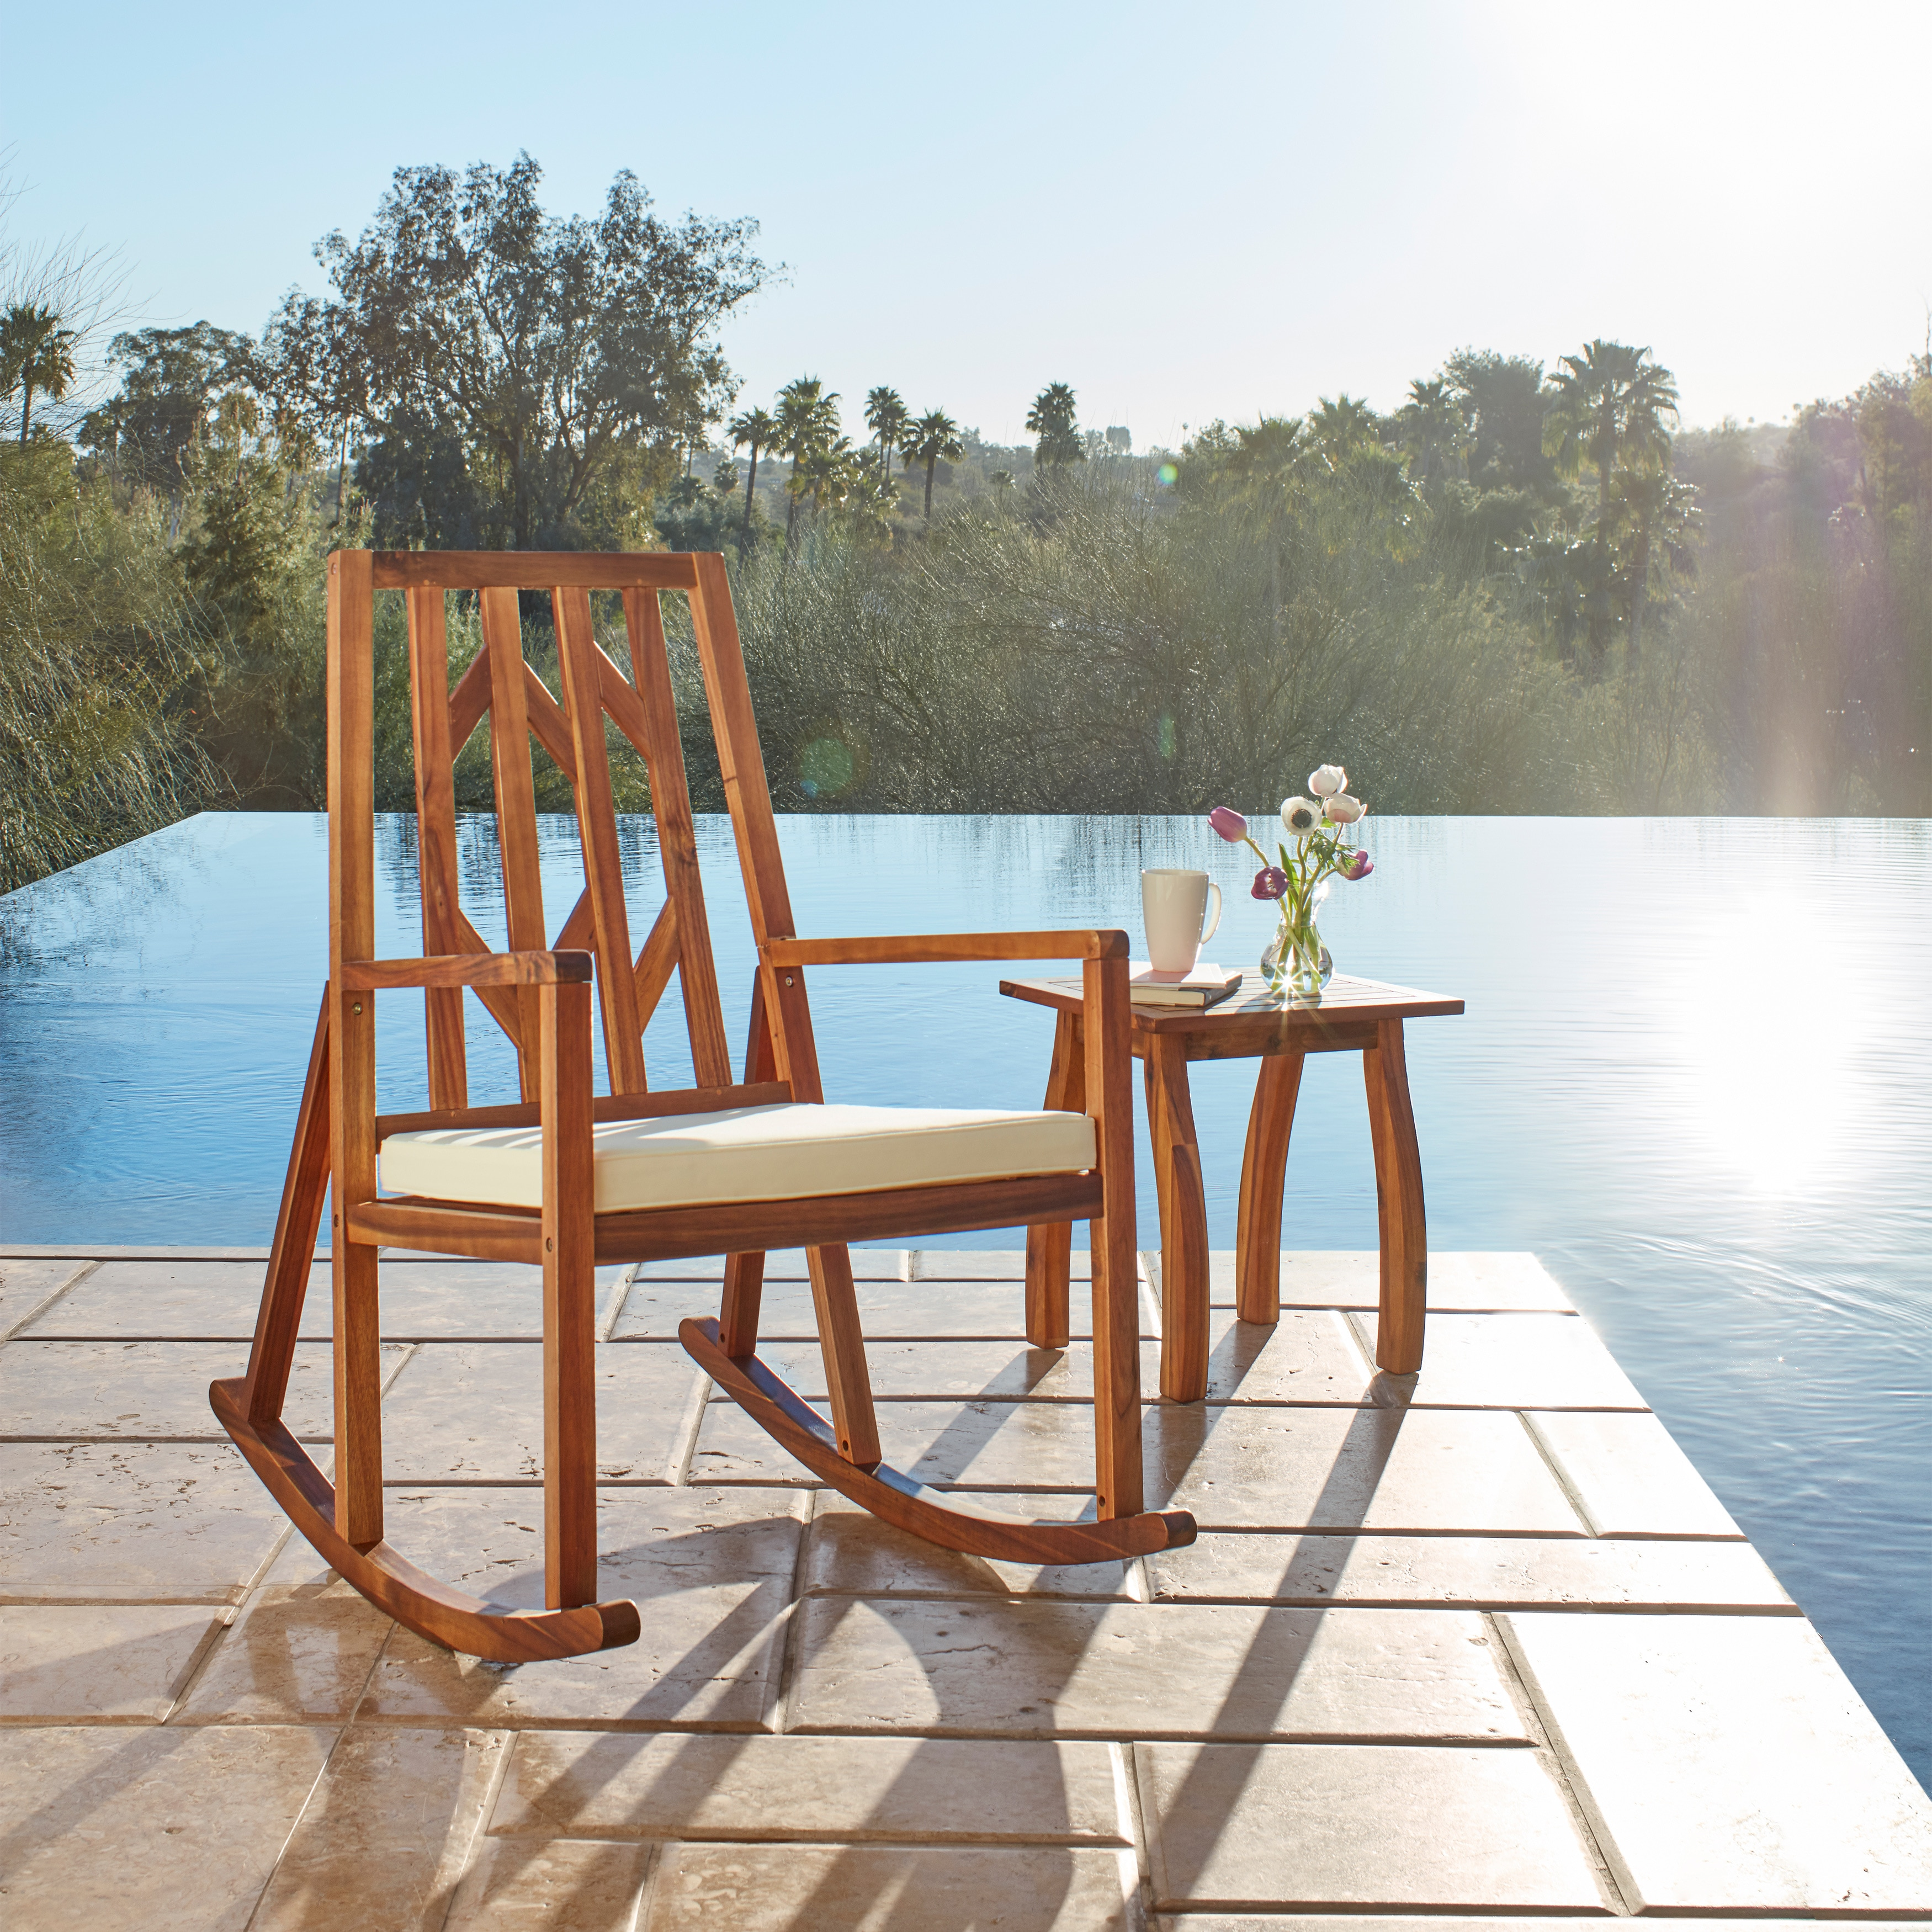 Nuna Outdoor 2 piece Wood Rocking Chair with Cushions and Table by